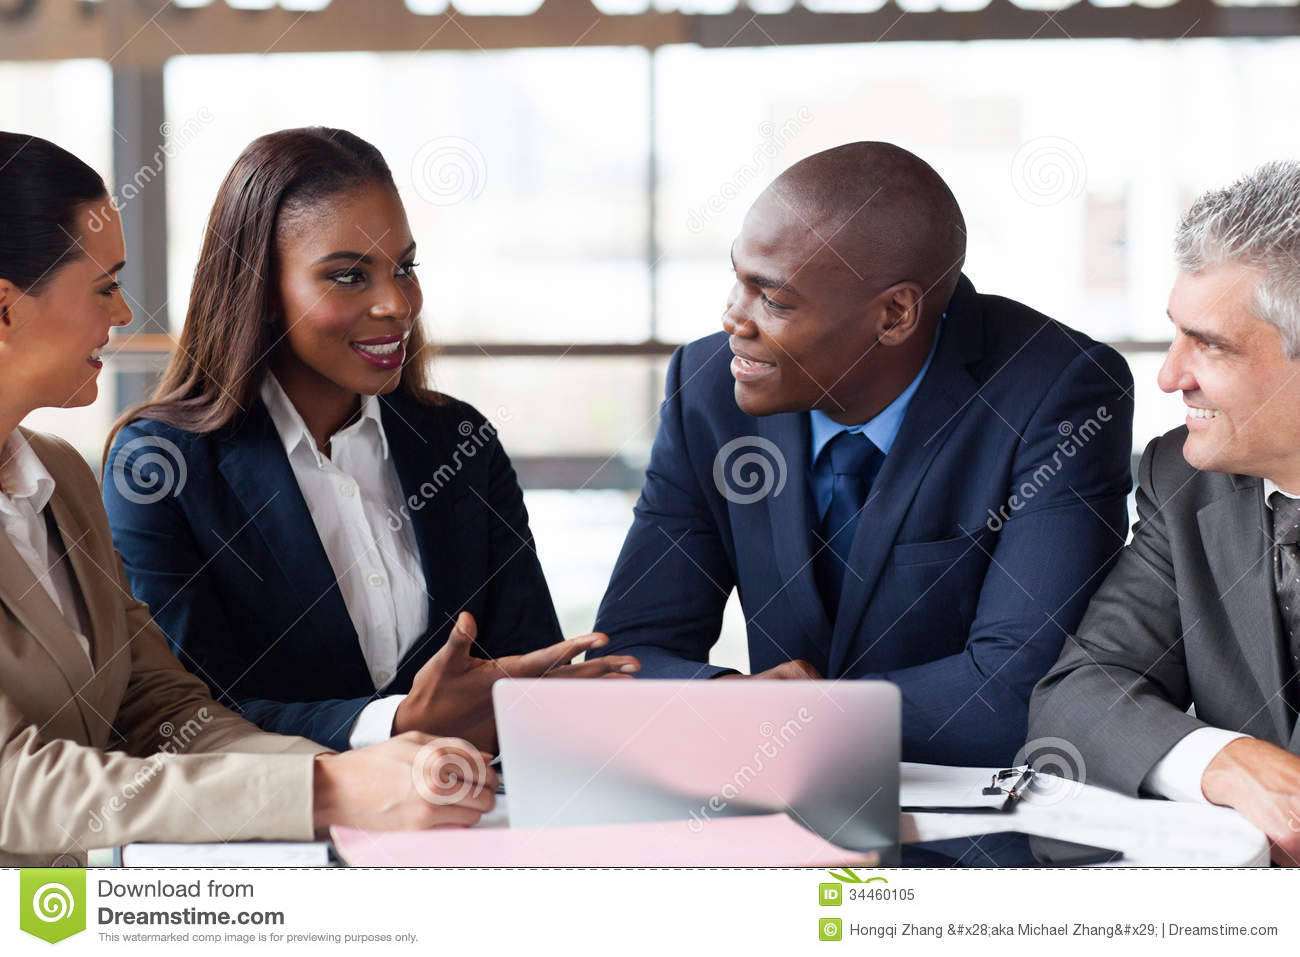 Business People Meeting Royalty Free Stock Photo - Image: 34460105